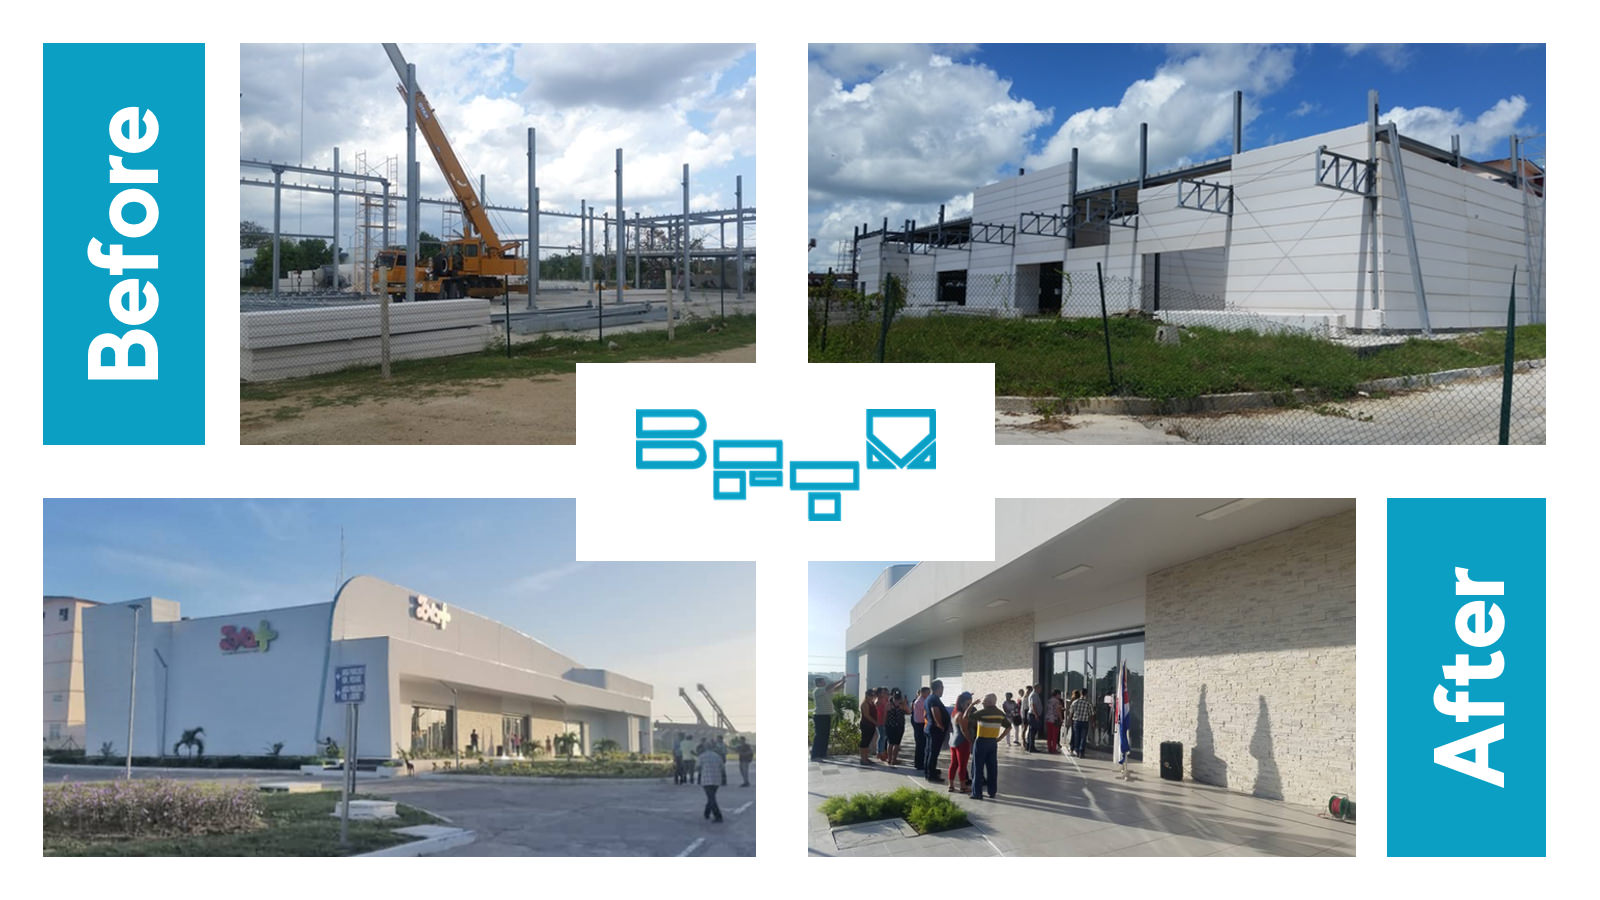 The shopping center in Latin America has ended: an example of a steel work created by BFTM